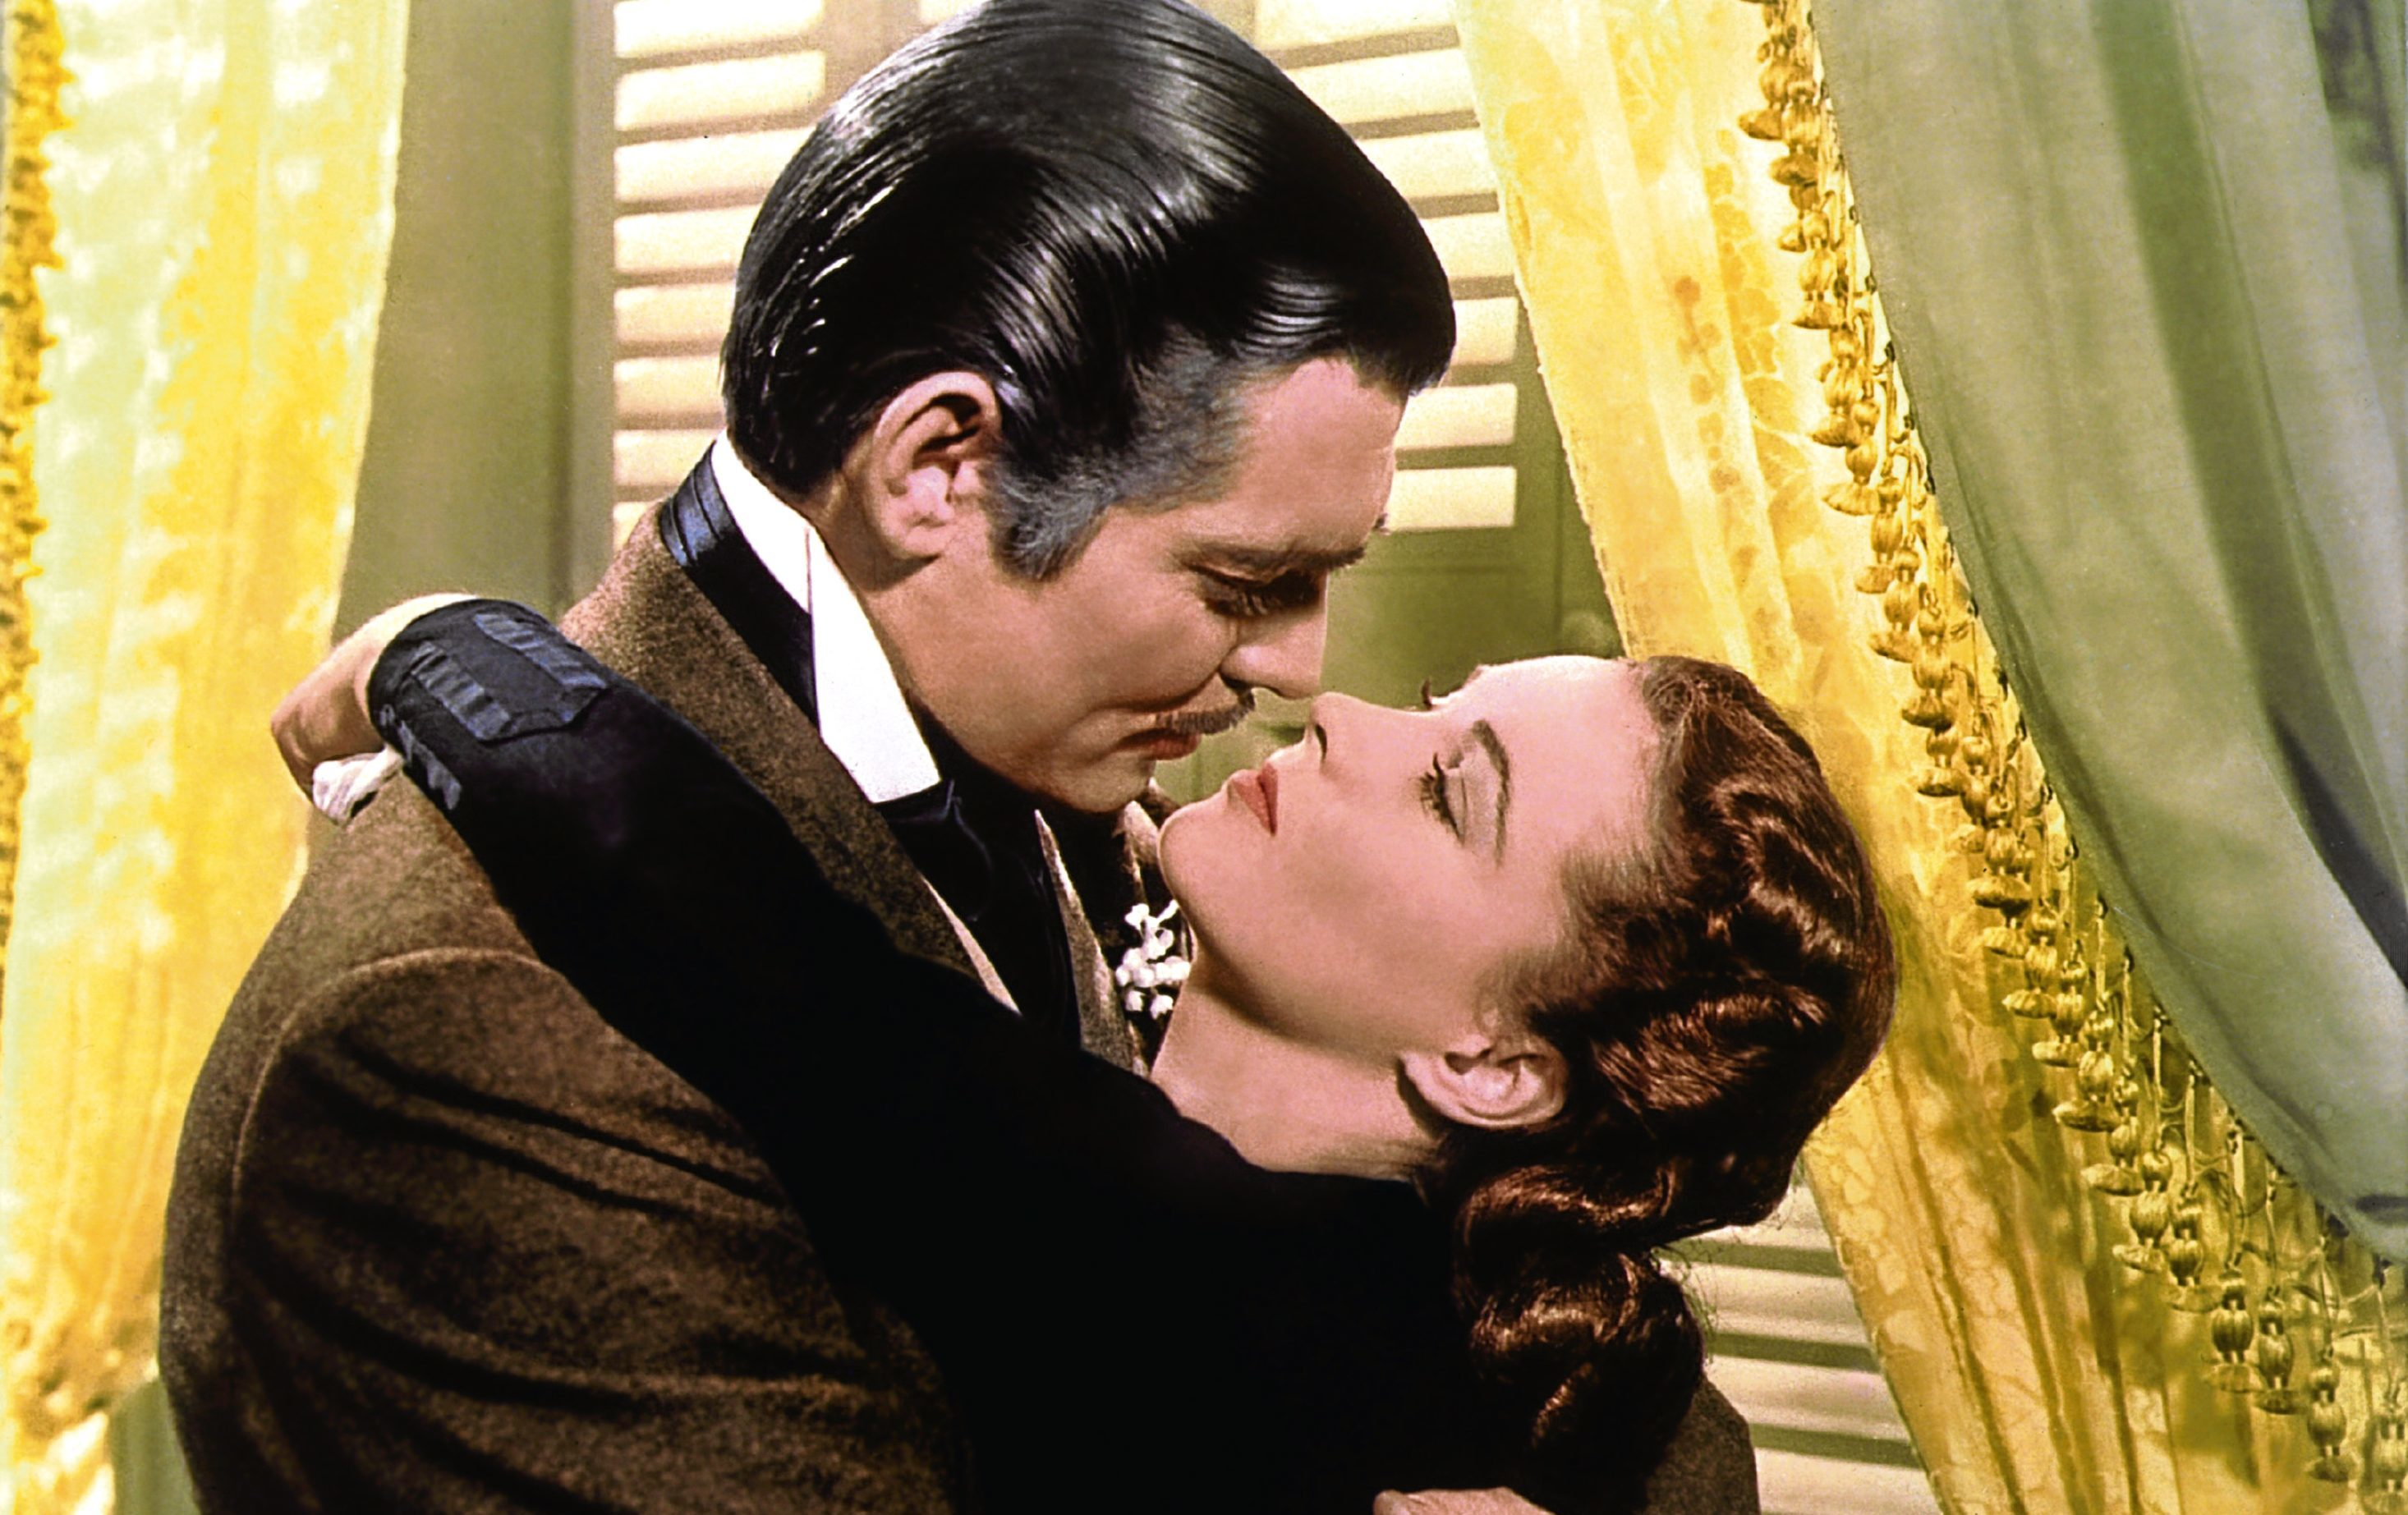 Clark Gable and Vivien Leigh in Gone With the Wind, 1939 (Allstar/MGM)